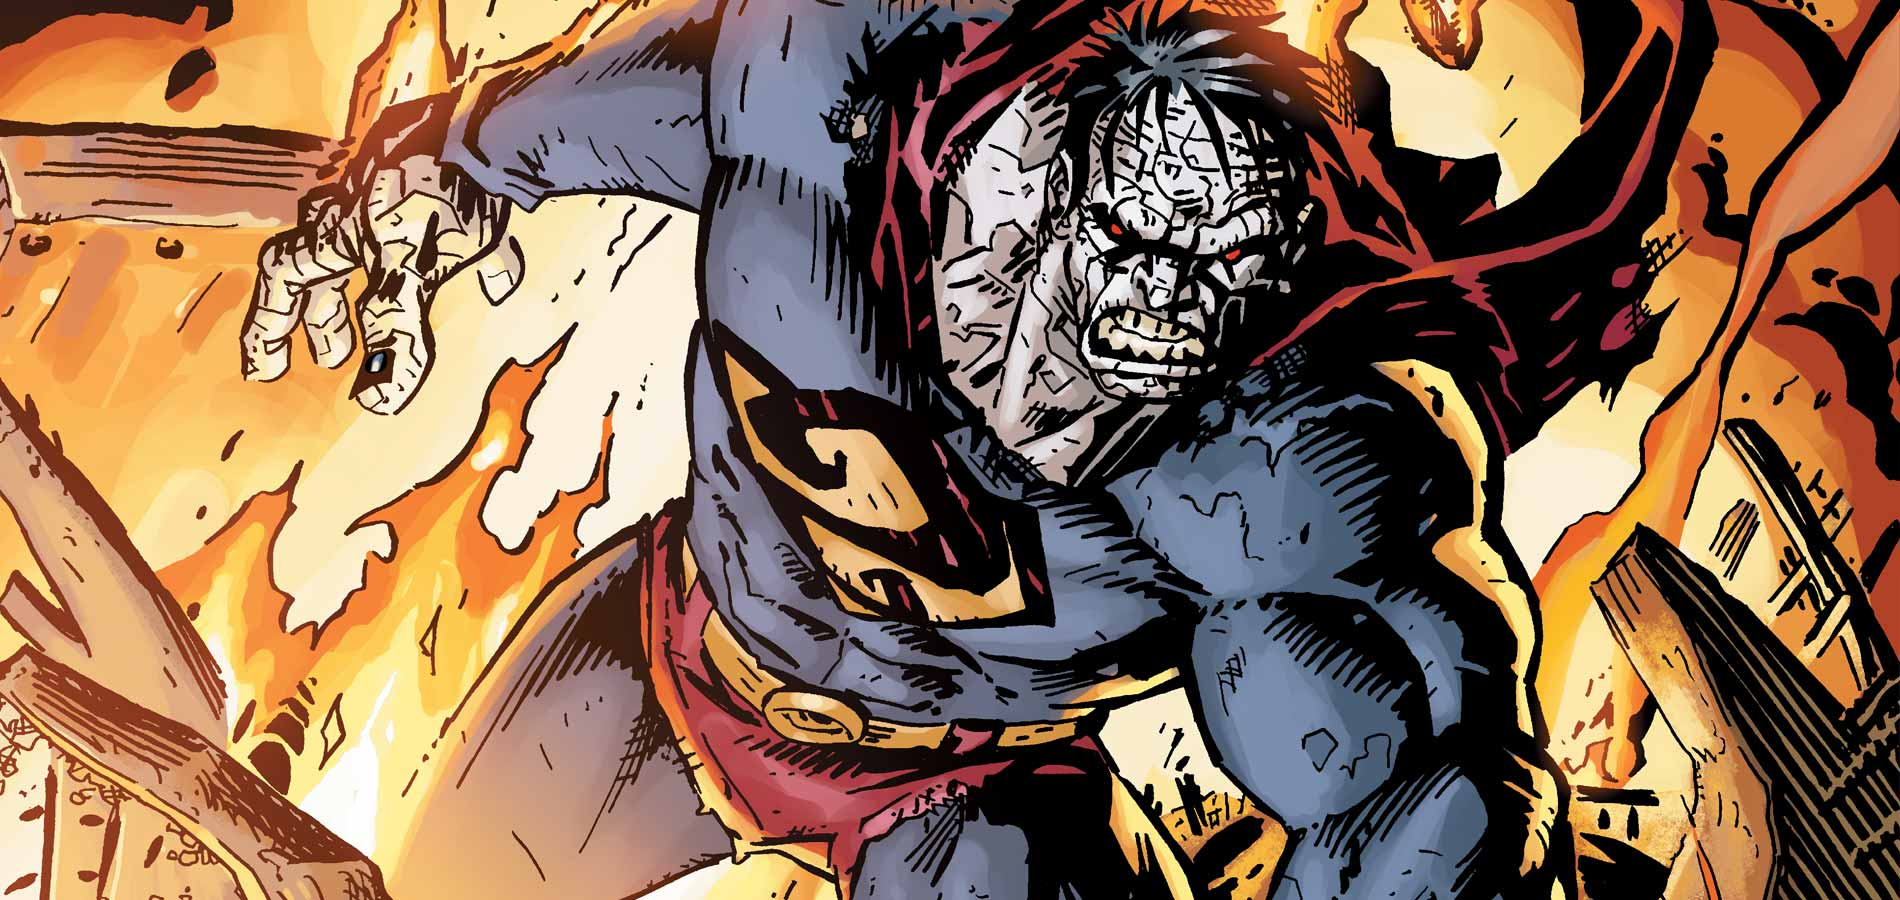 DC Universe gets weird with new anthology series, BizarroTV